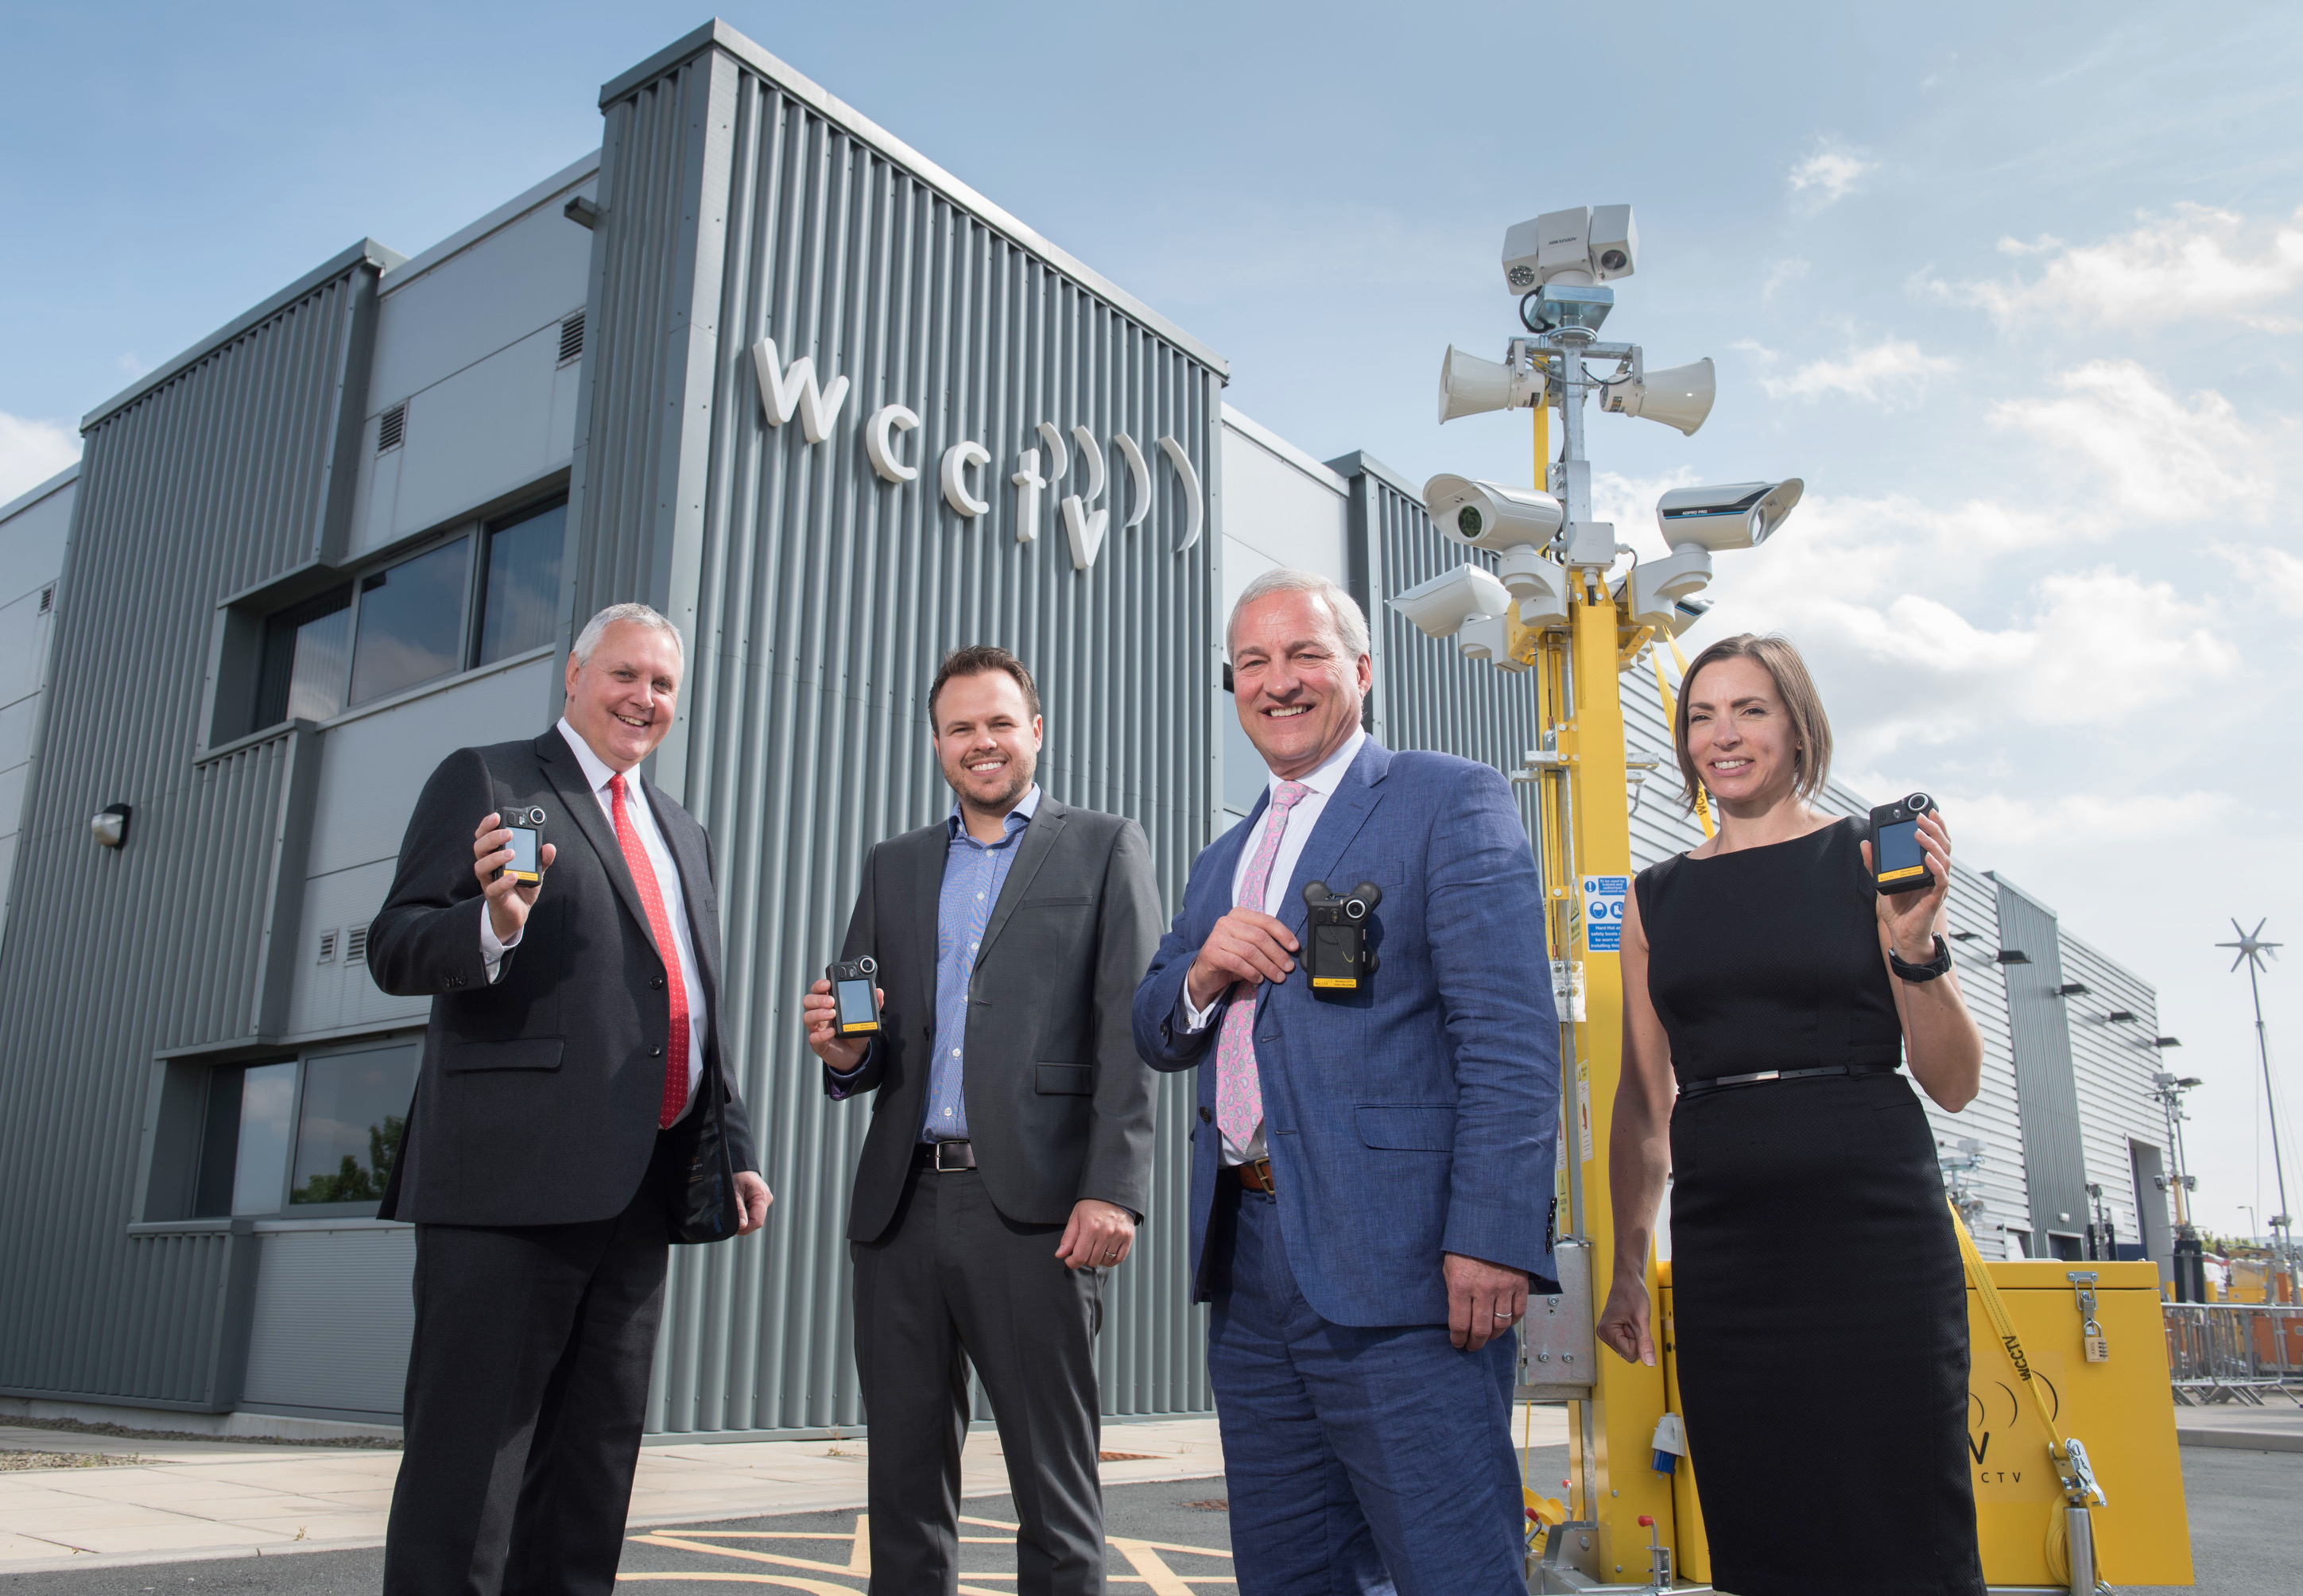 Image: WCCTV Sets Sights On Growth With HSBC Funding